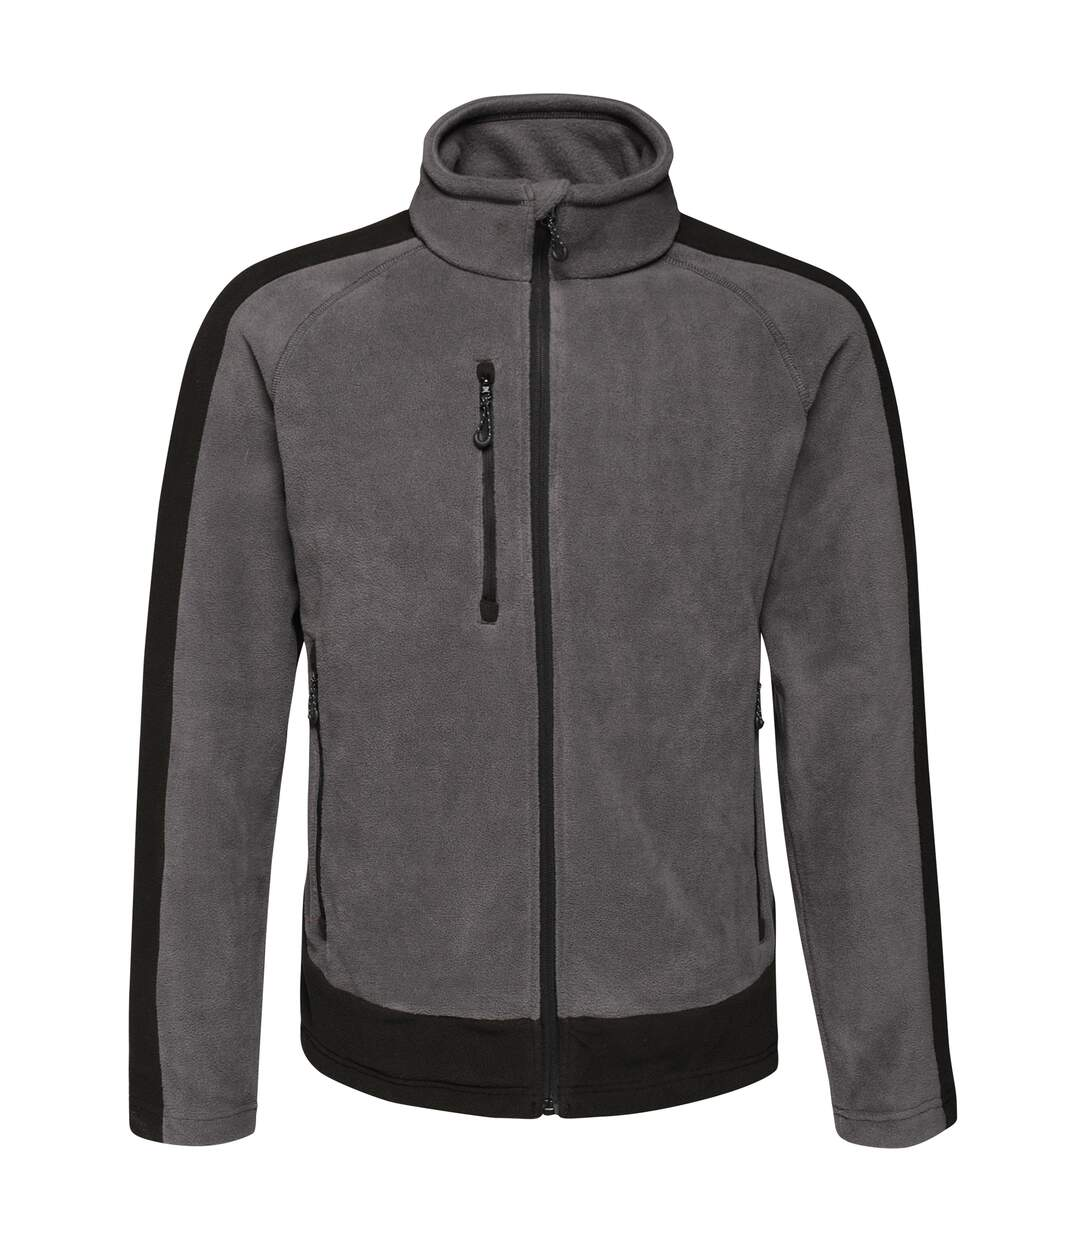 Regatta Contrast Mens 300 Fleece Top/Jacket (Seal/Black) - UTRW6352